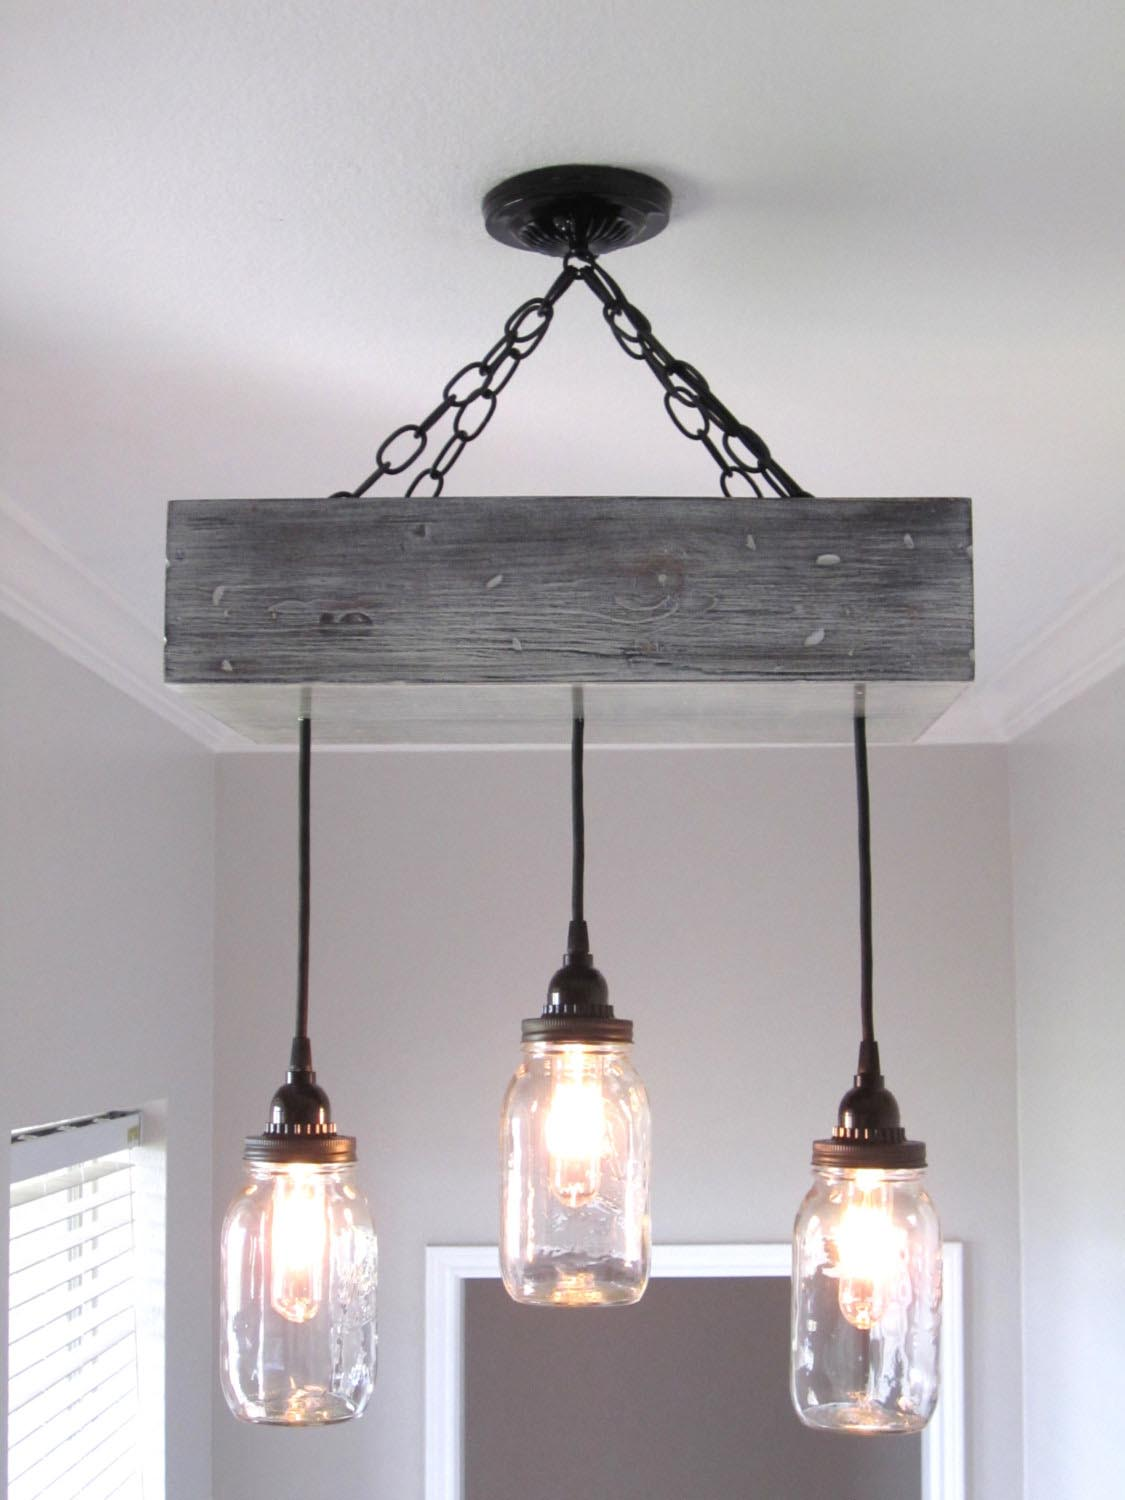 Farmhouse Ceiling Light FixturesFarmhouse Ceiling Light Fixtures   Light Fixtures Design Ideas. Farmhouse Lighting Fixtures. Home Design Ideas